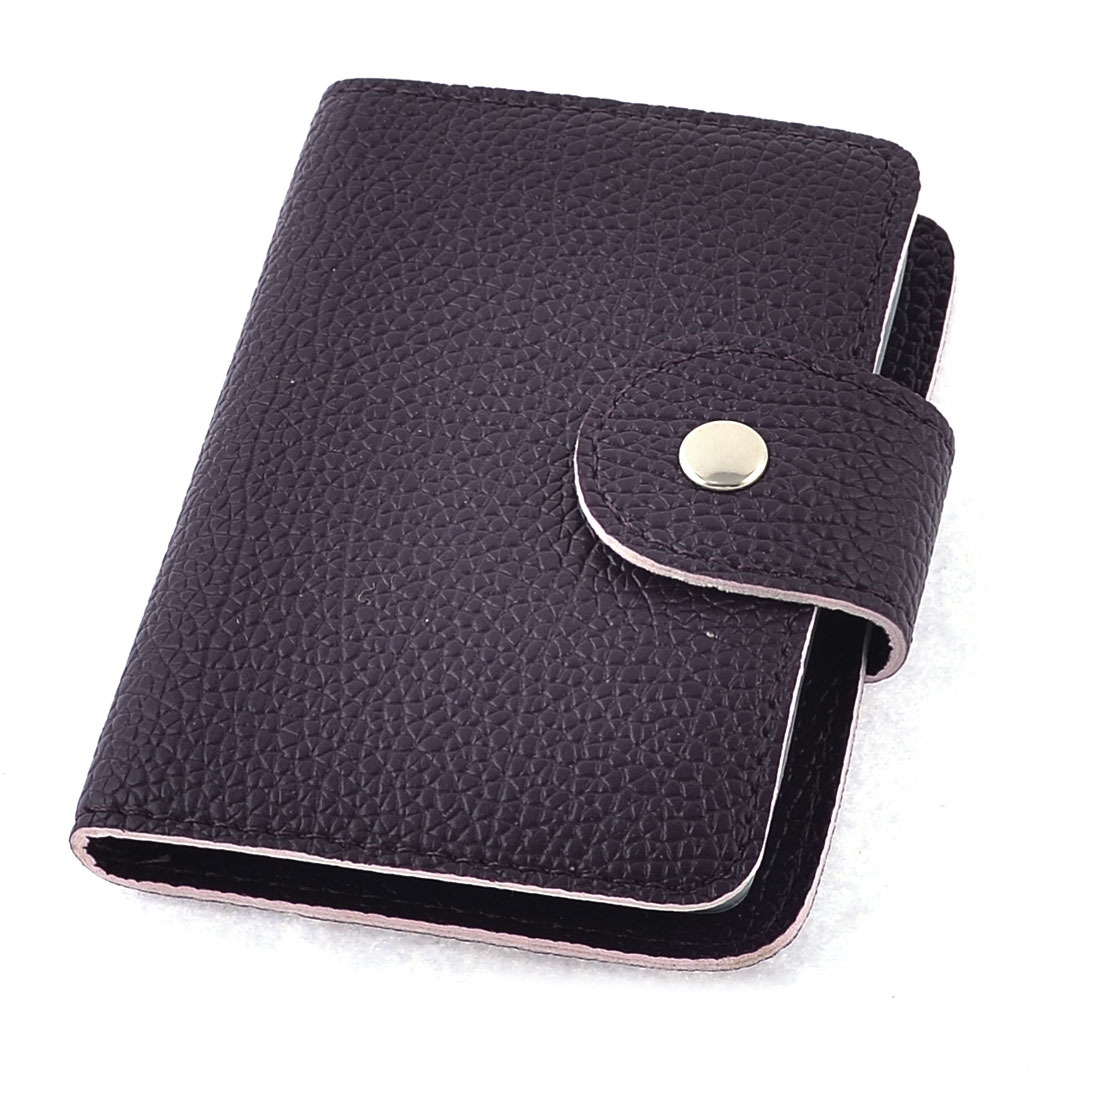 Dark Purple Rectangle Shaped Litchi Print Name Credit Card Holder Container